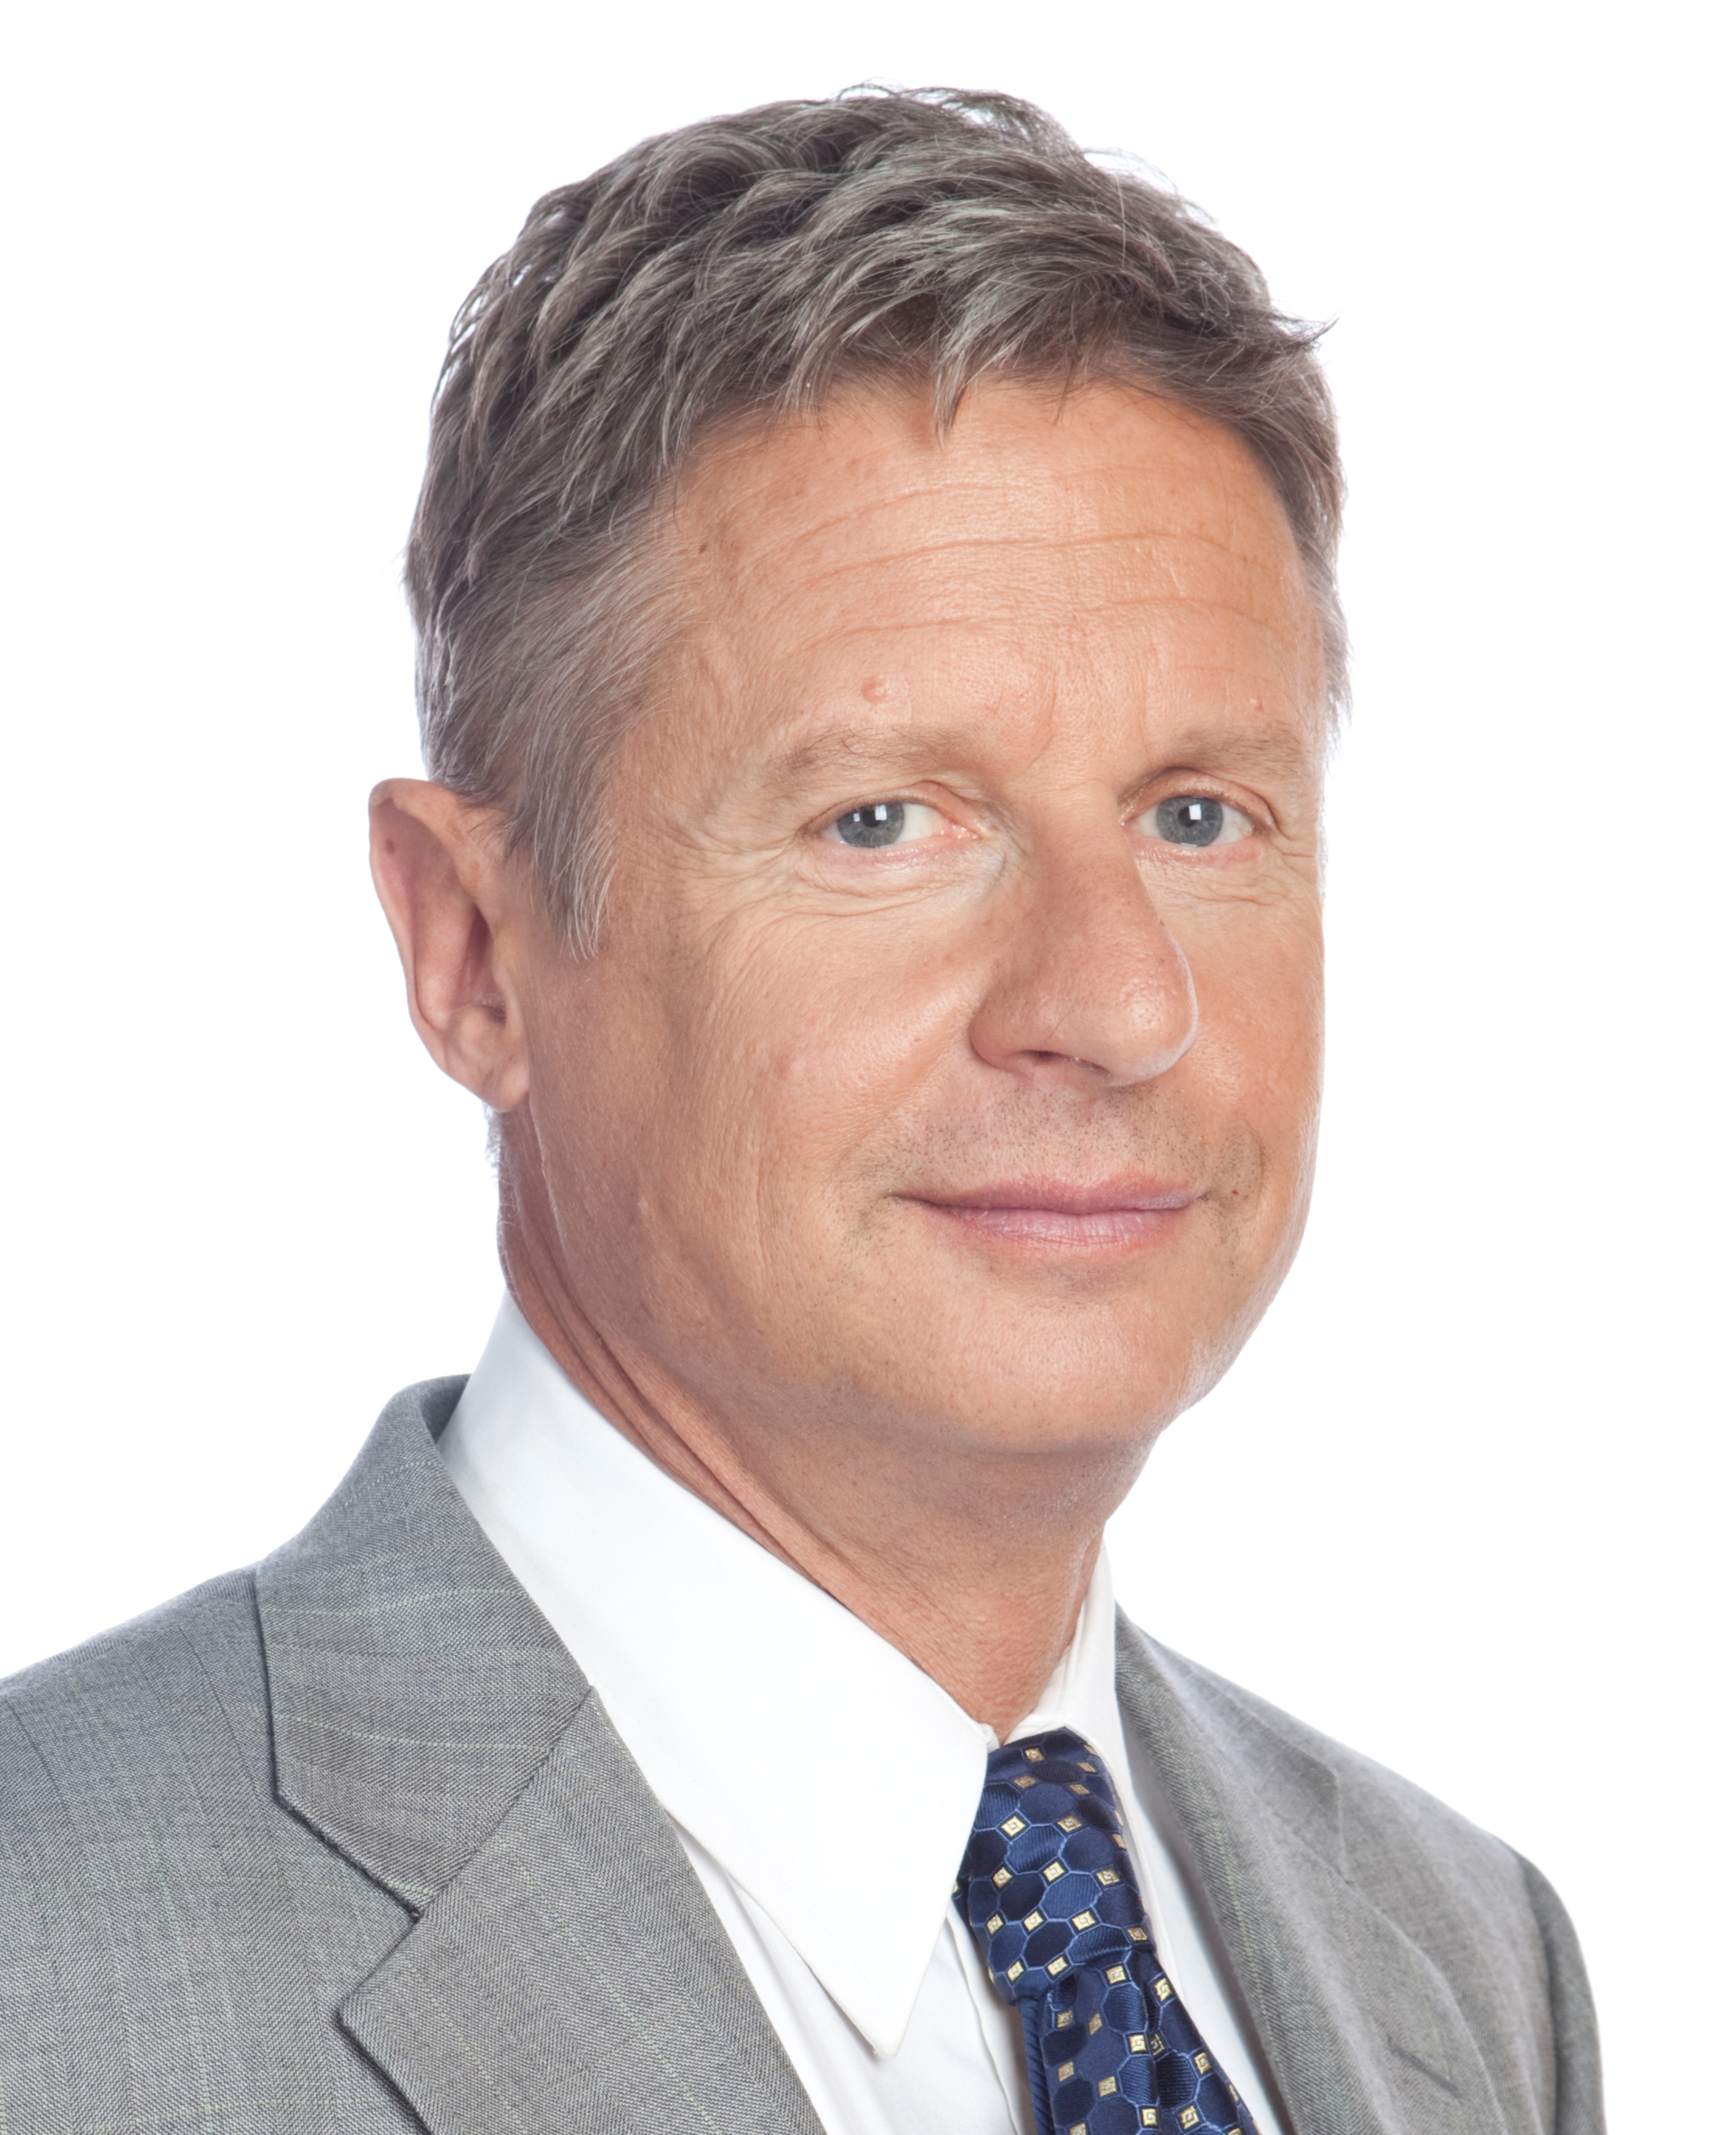 GARY JOHNSON - Rogue Politician